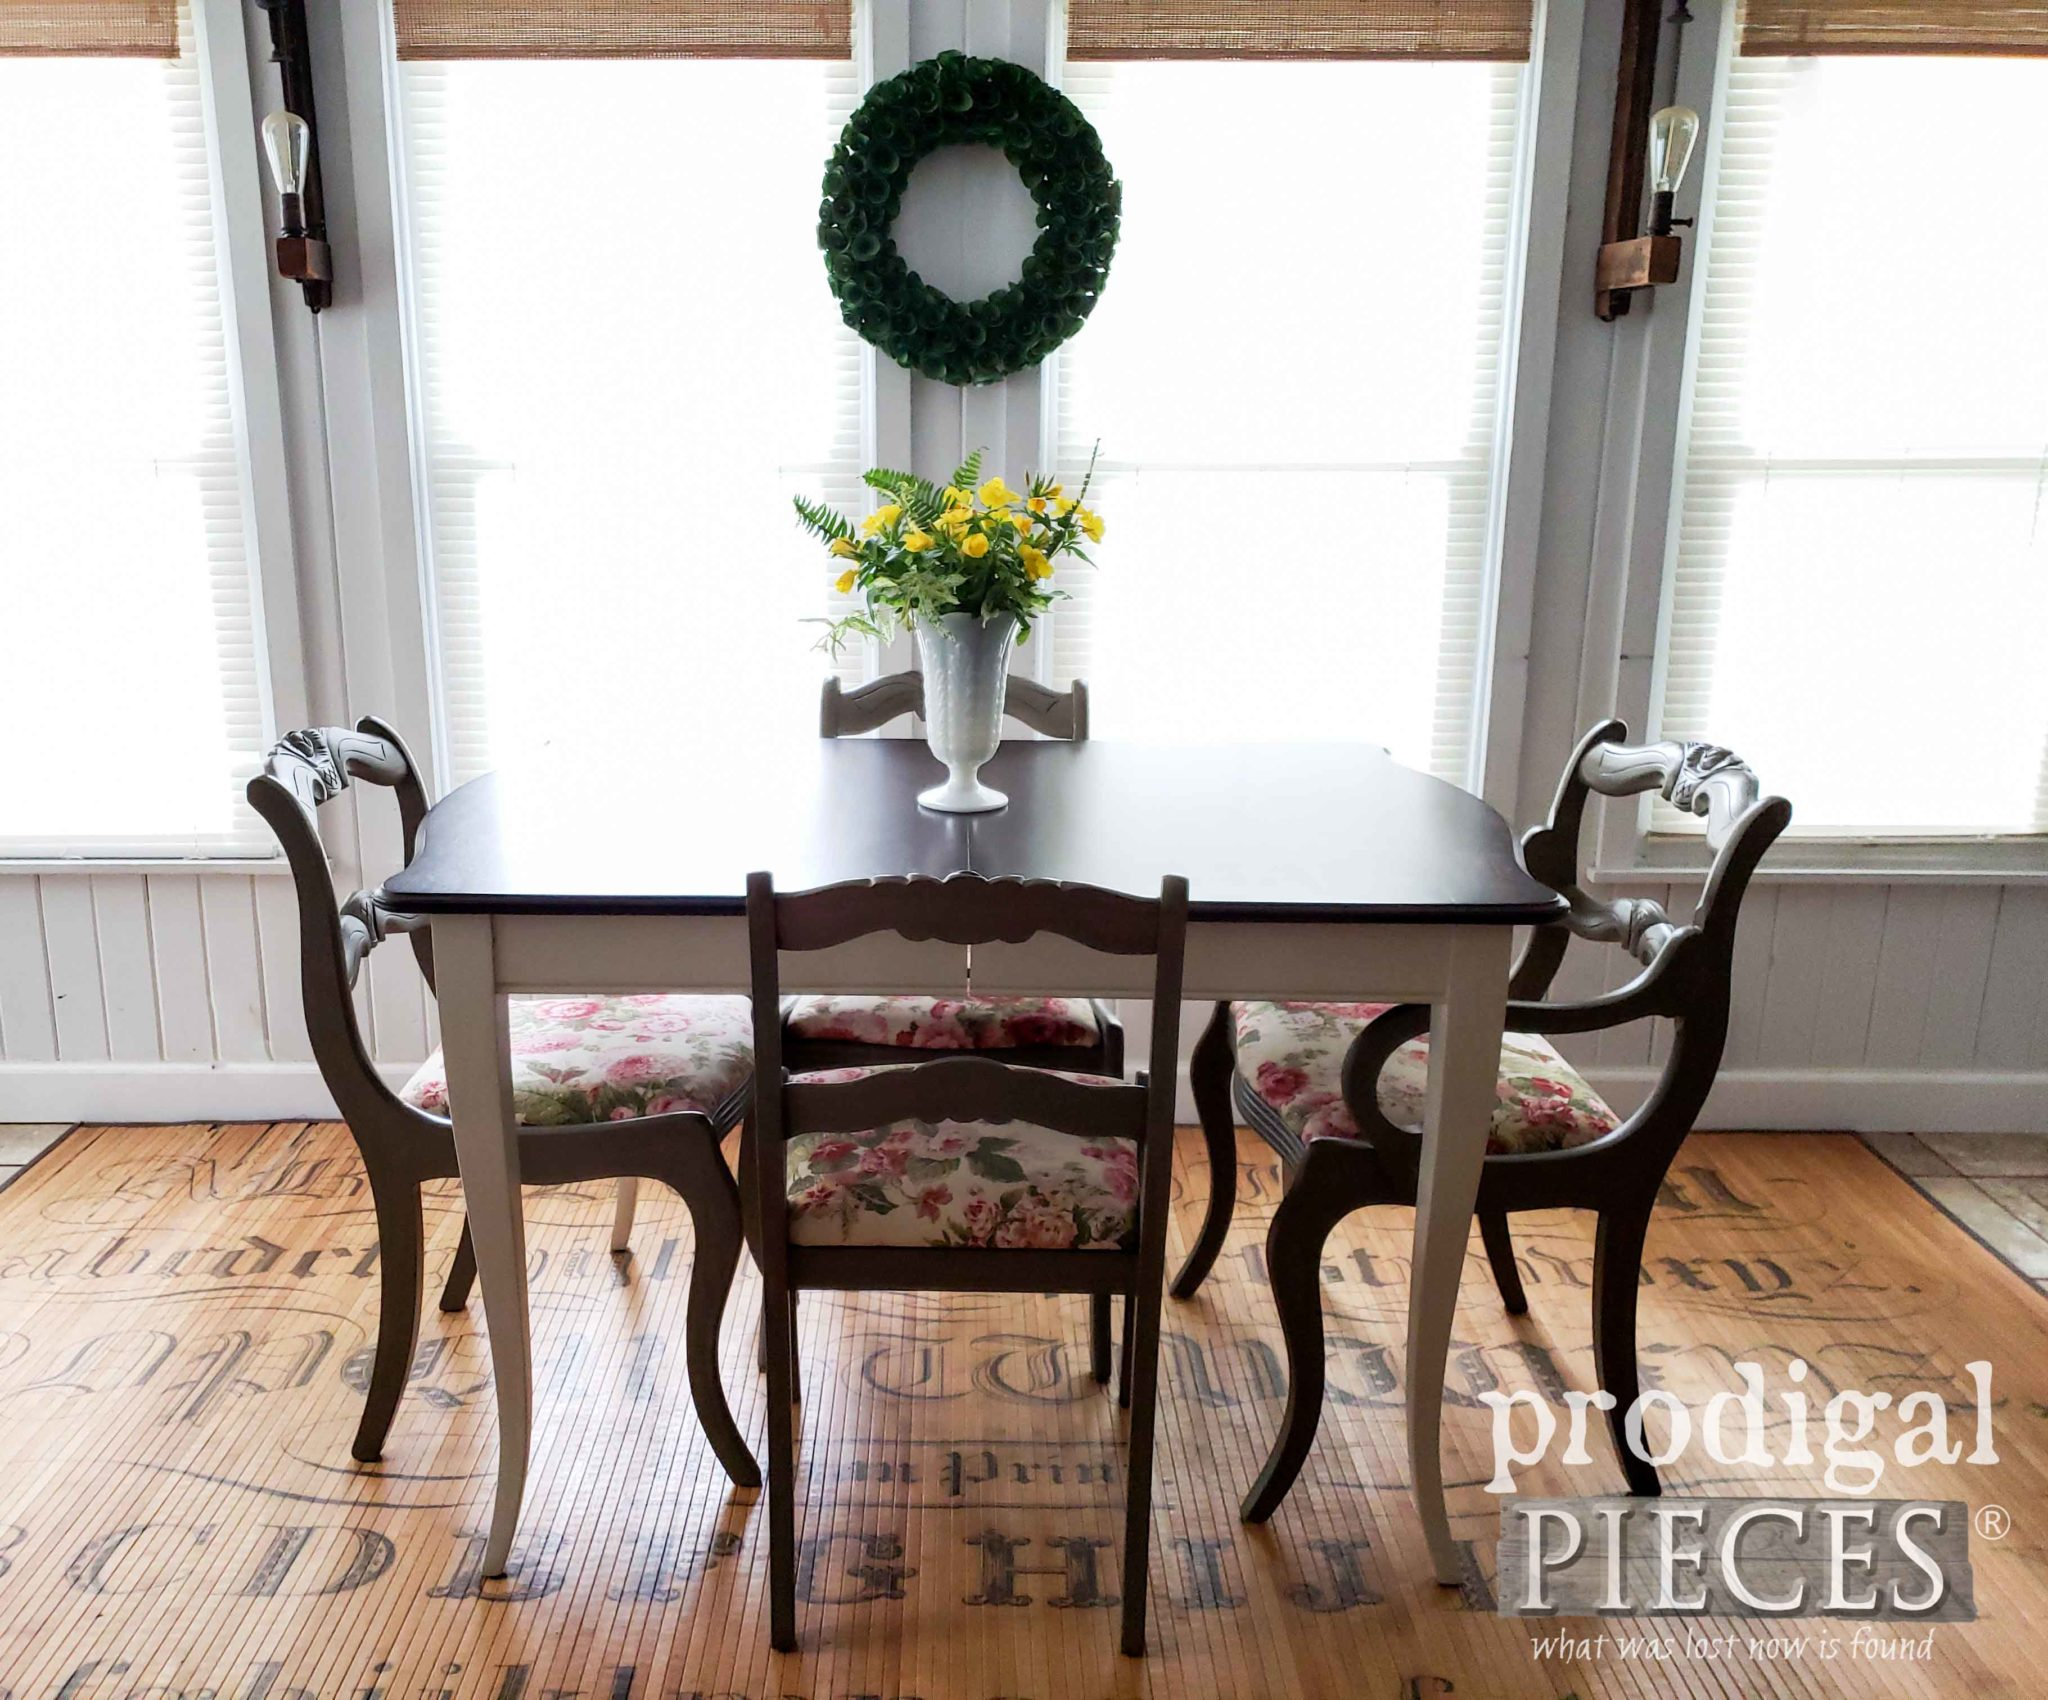 Merveilleux Traditional Vintage Dining Set With Extension Table And Upholstered Chairs  By Larissa Of Prodigal Pieces |